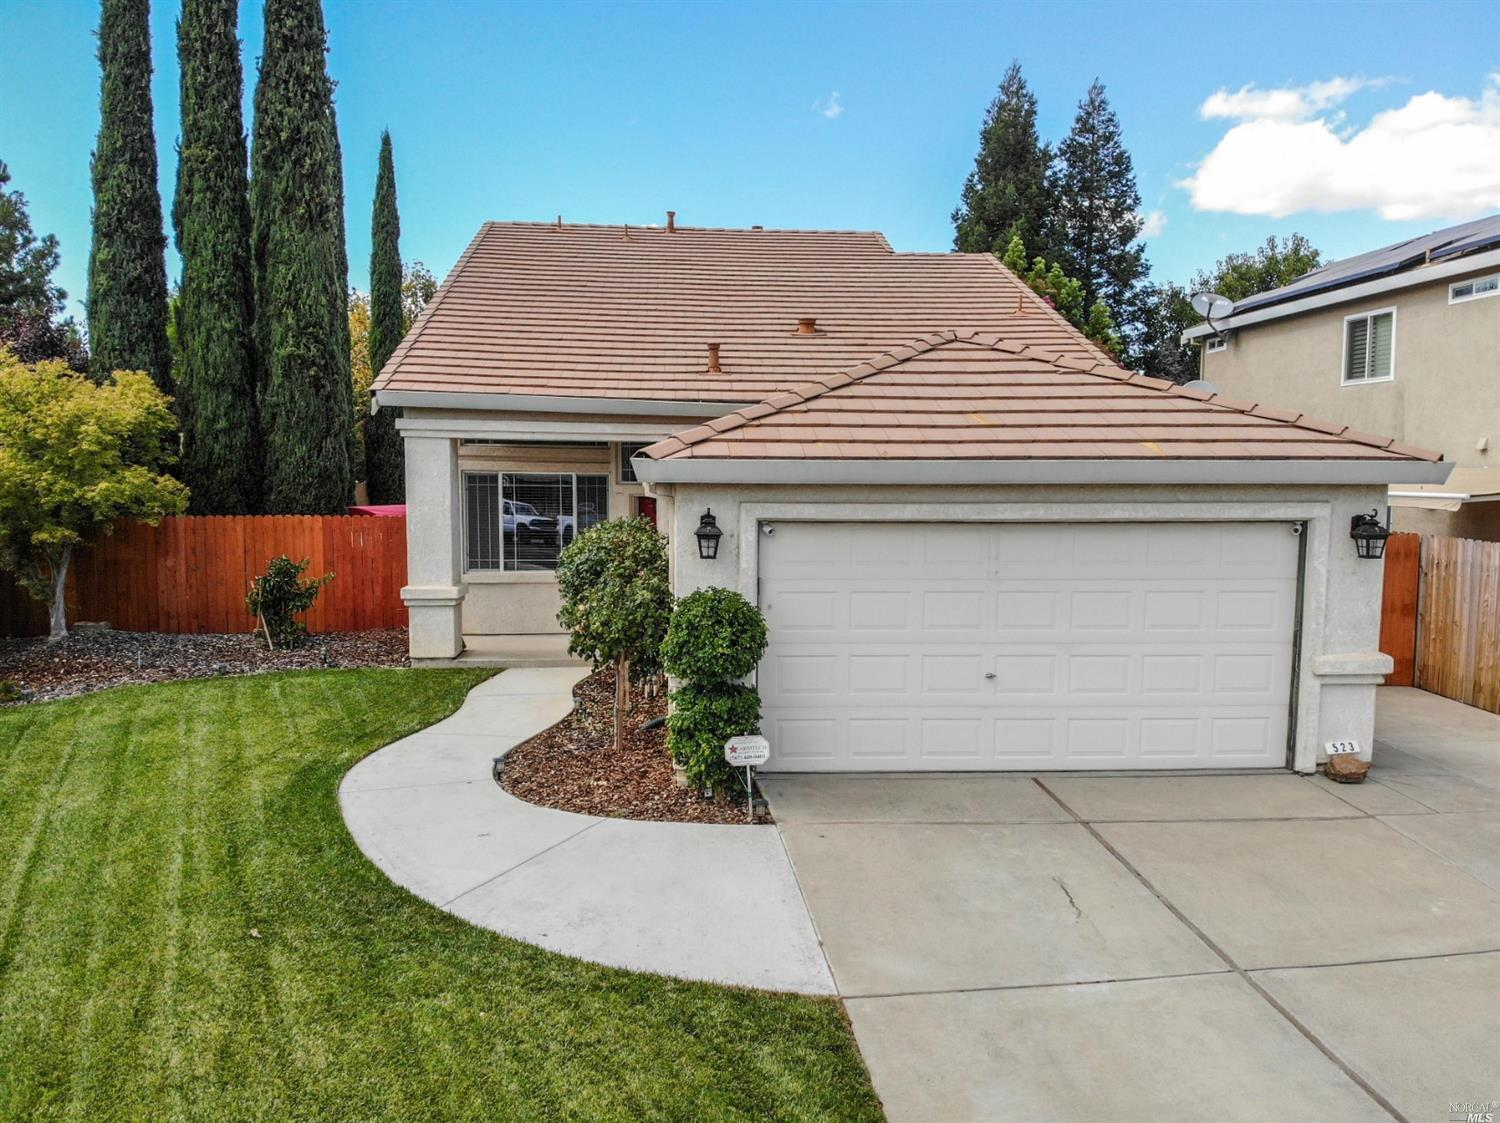 Photo of 523 Edenderry Drive, Vacaville, CA 95688